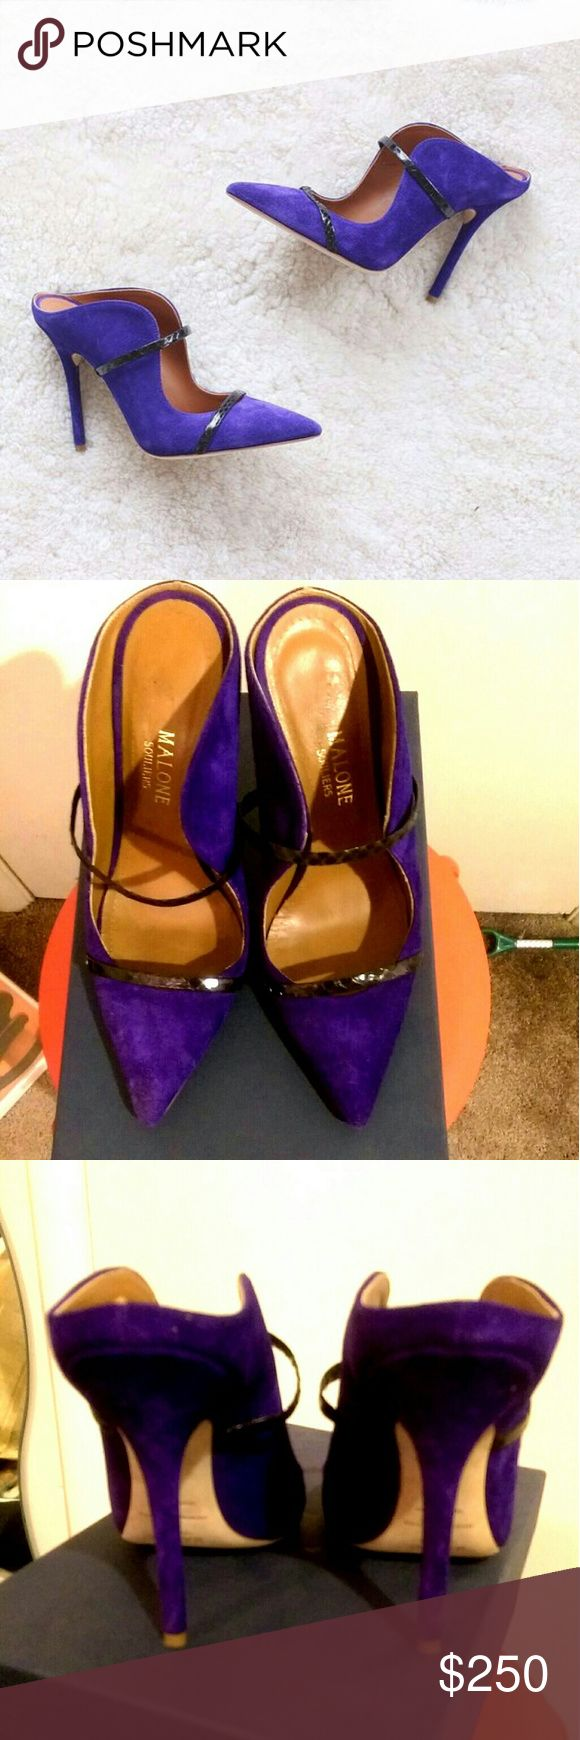 """Size 8 Purple Malone Souliers Maureen Size 8(38), purple suede, all around genuine leather, 4"""" heels, gorgeous open back stilletos. Worn only twice, little too high for me. Malone Souliers Shoes Heels"""